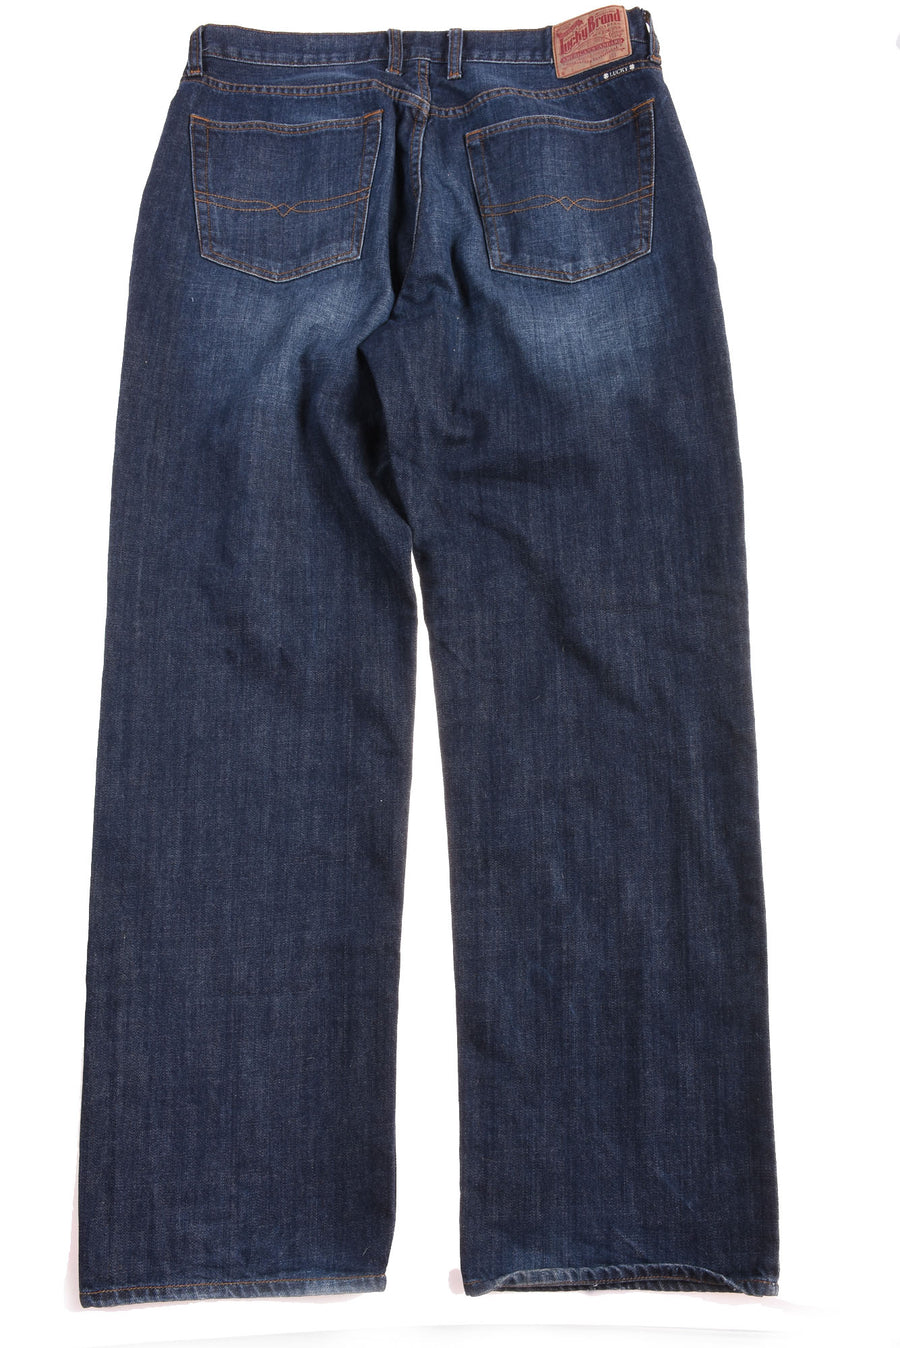 USED Lucky Brand Men's Pants 36x34 Blue